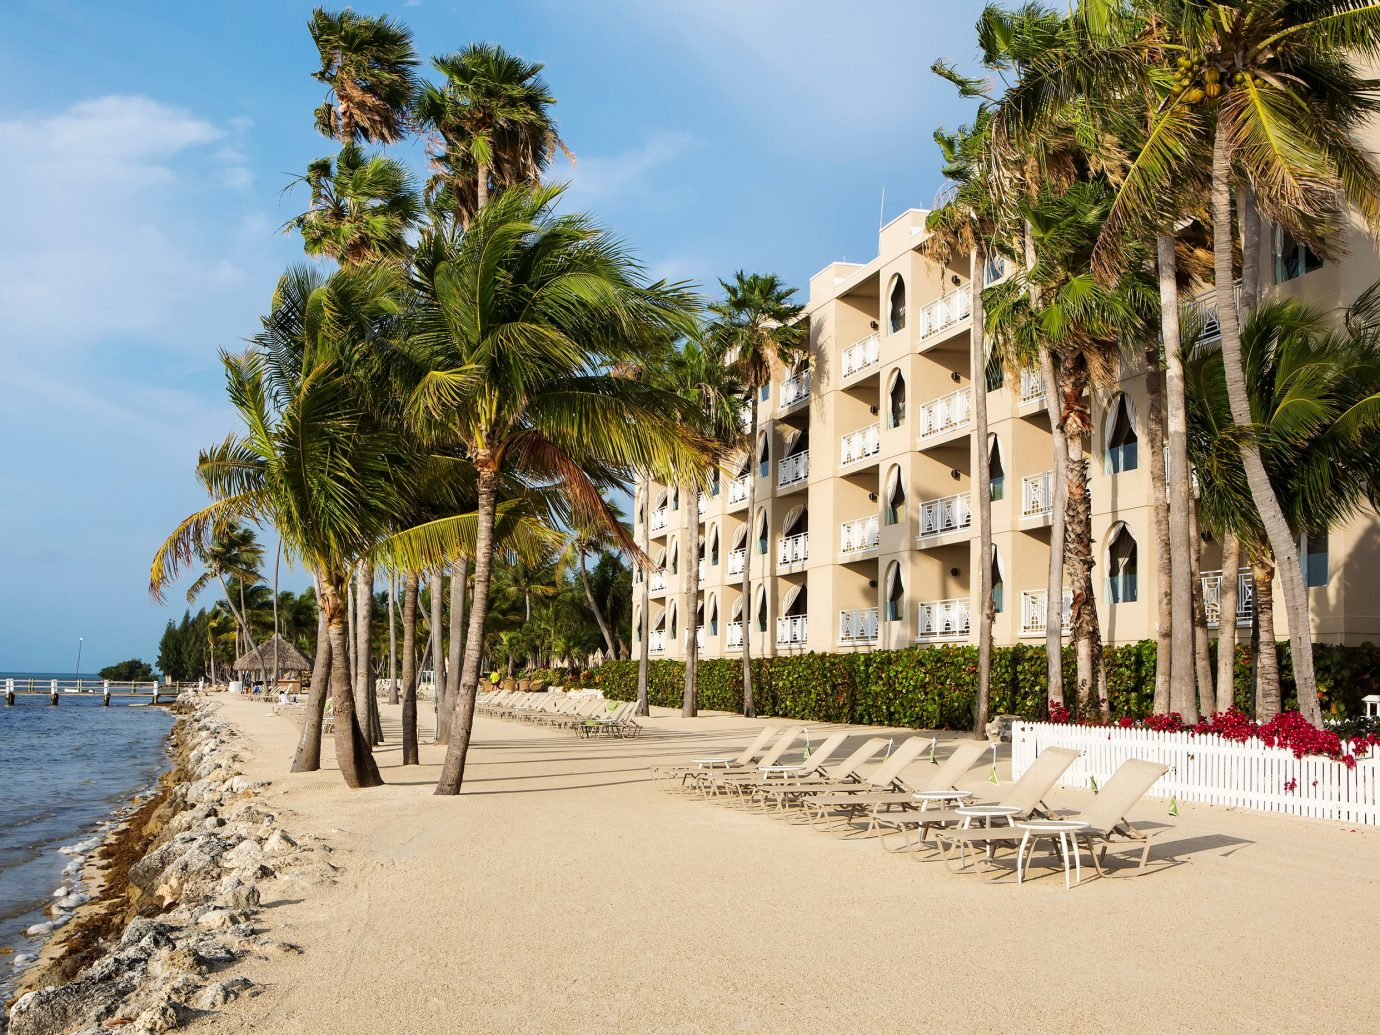 Hotels Romance outdoor tree sky Beach palm vacation walkway Resort arecales tourism plant Coast lined Sea palm family boardwalk sandy travel shore shade several day